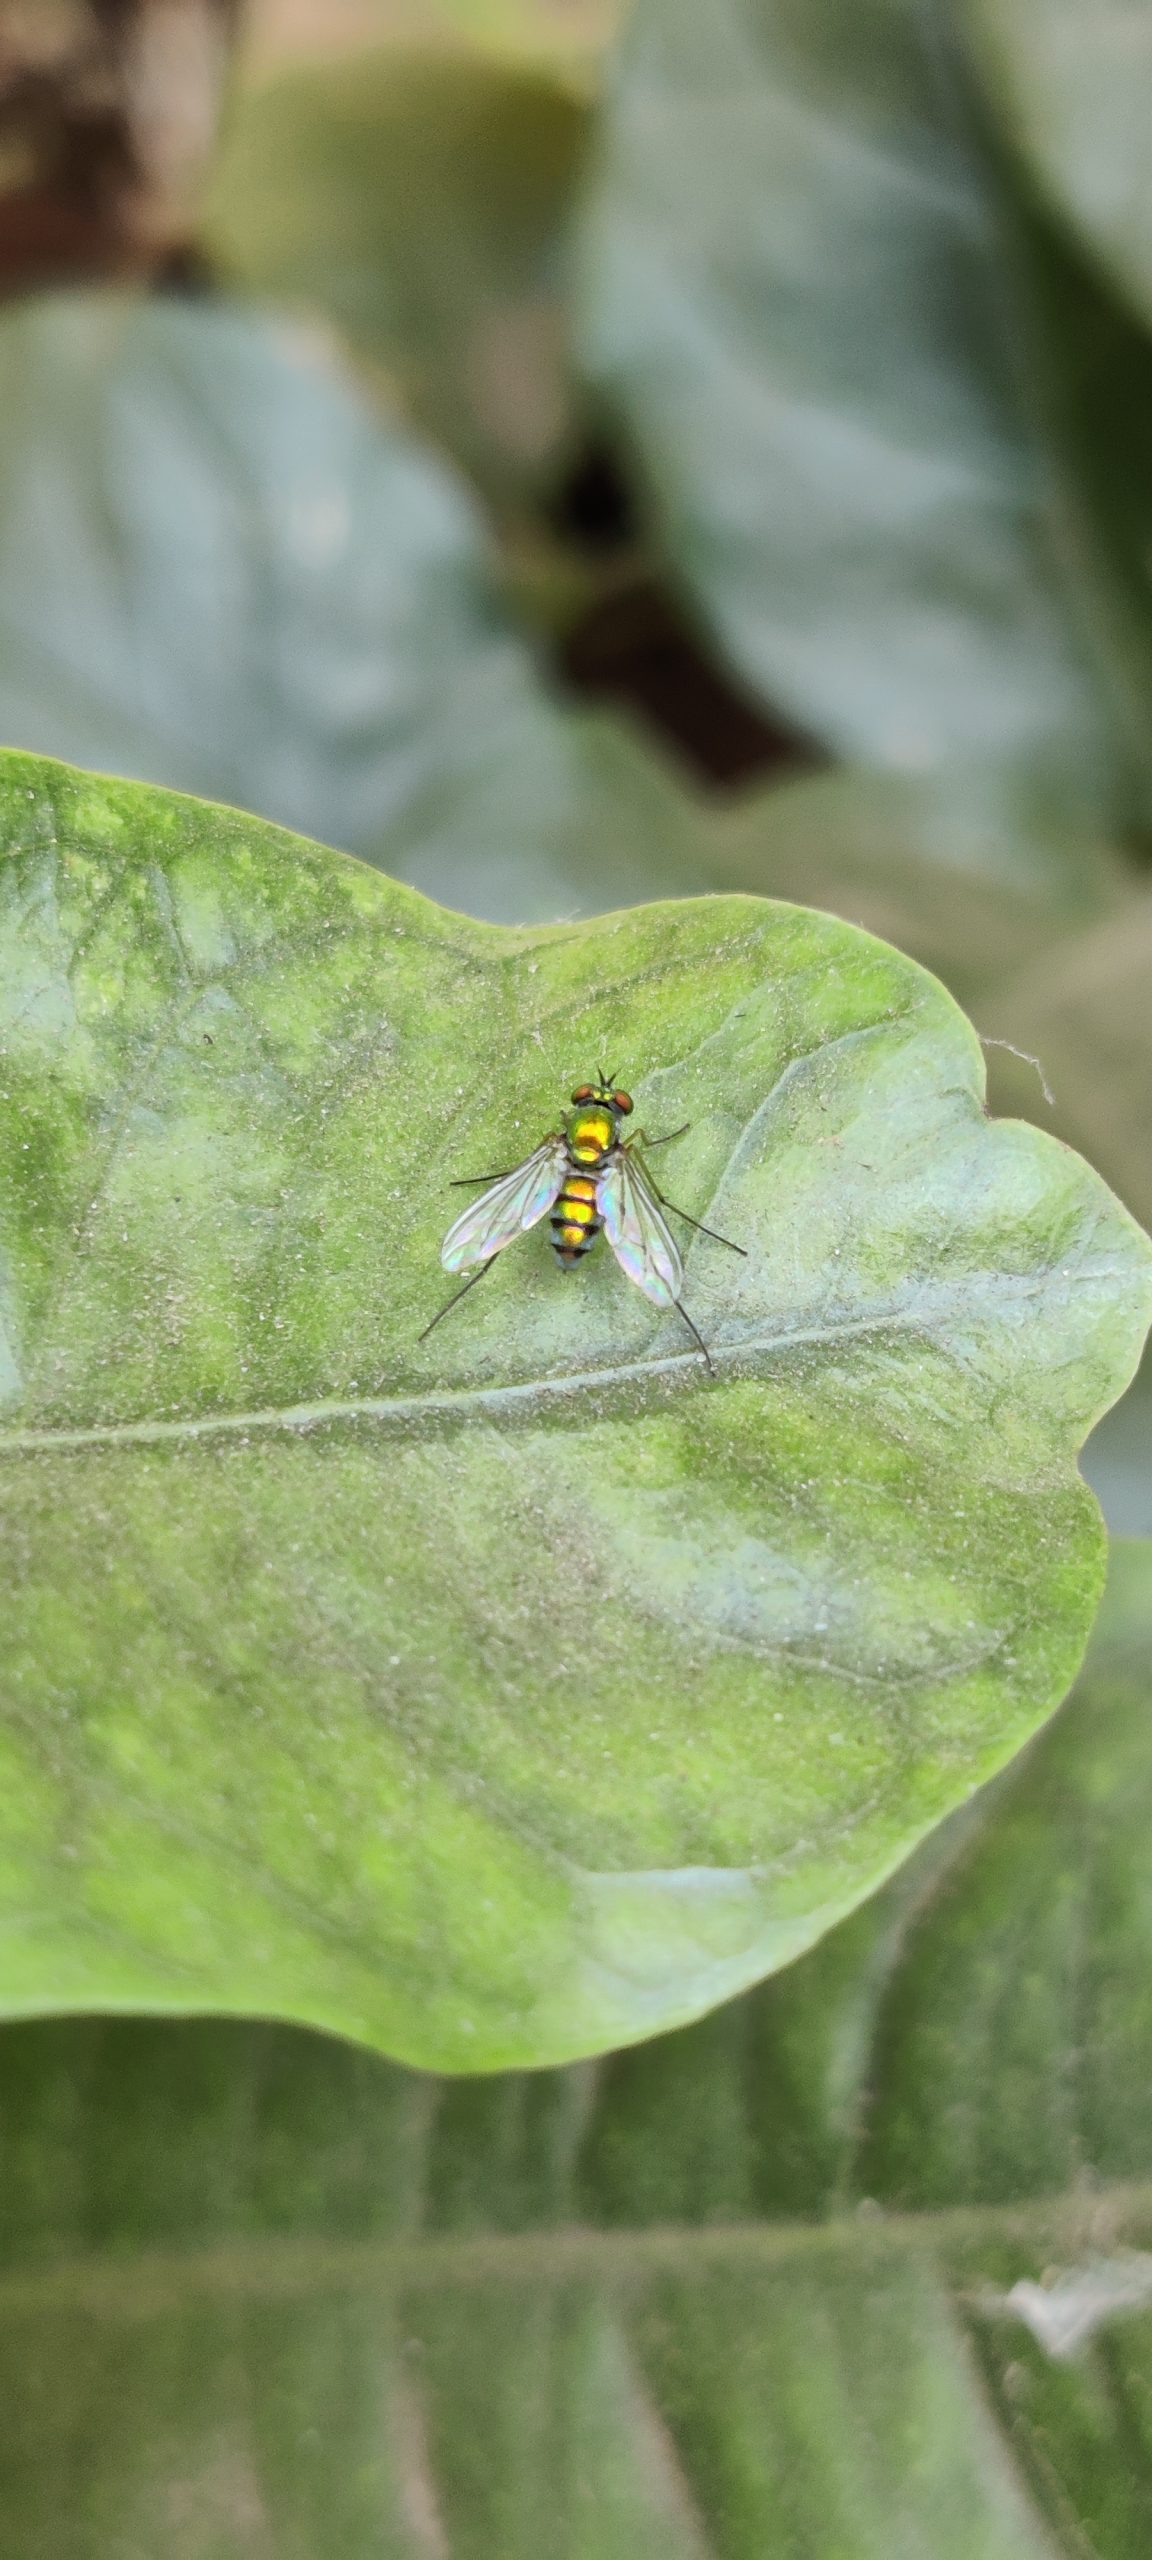 Housefly on the plant leaf